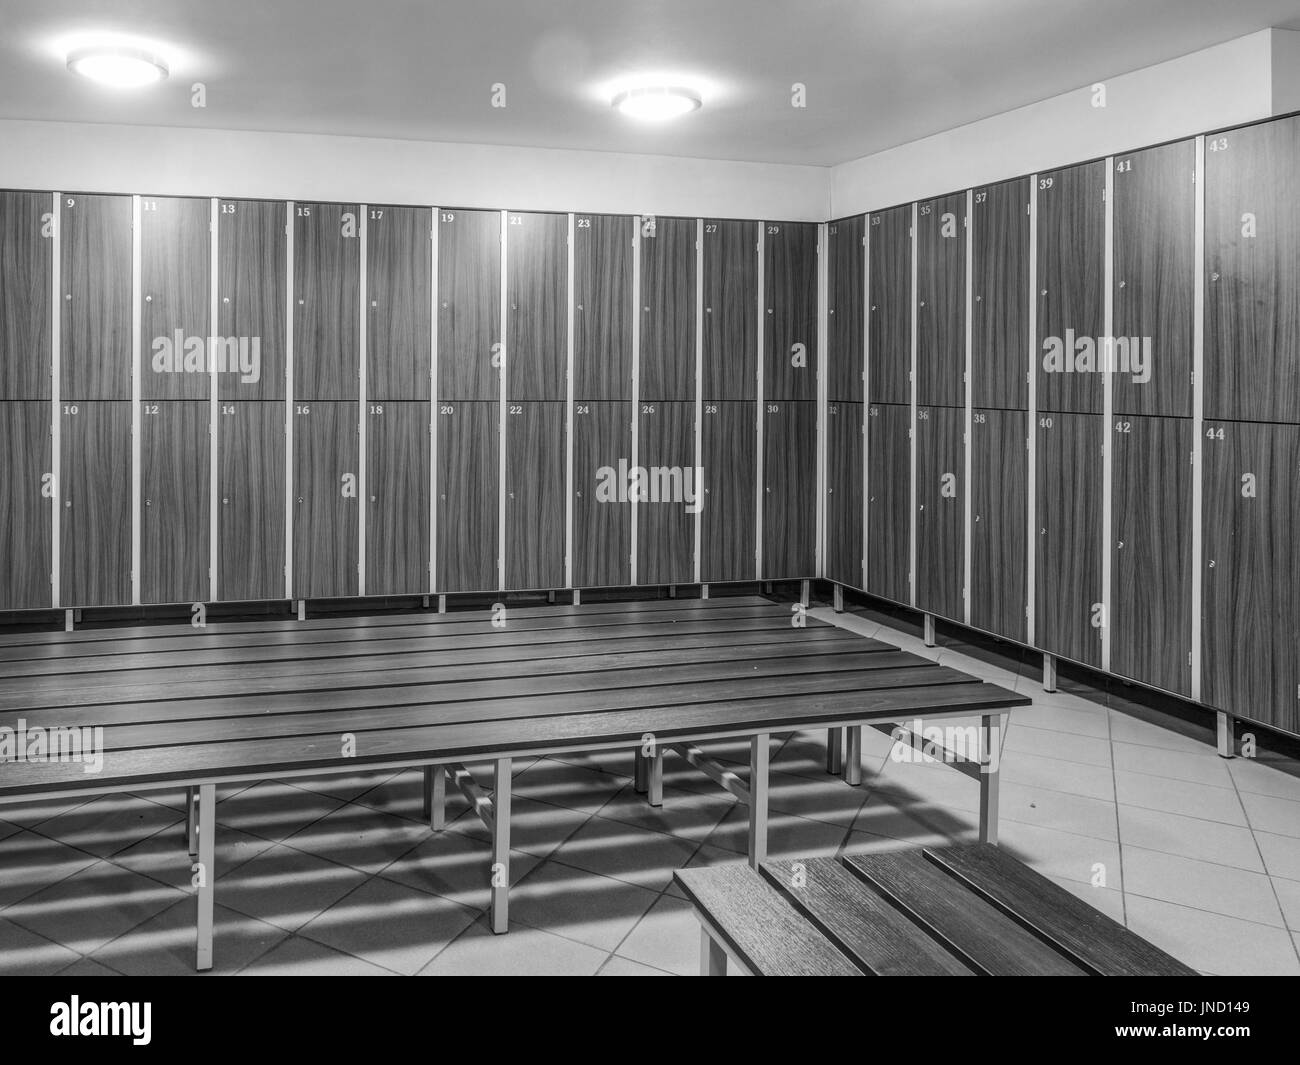 The row of wooden cabinets and a wooden bench in a fitness club dressing room - Stock Image